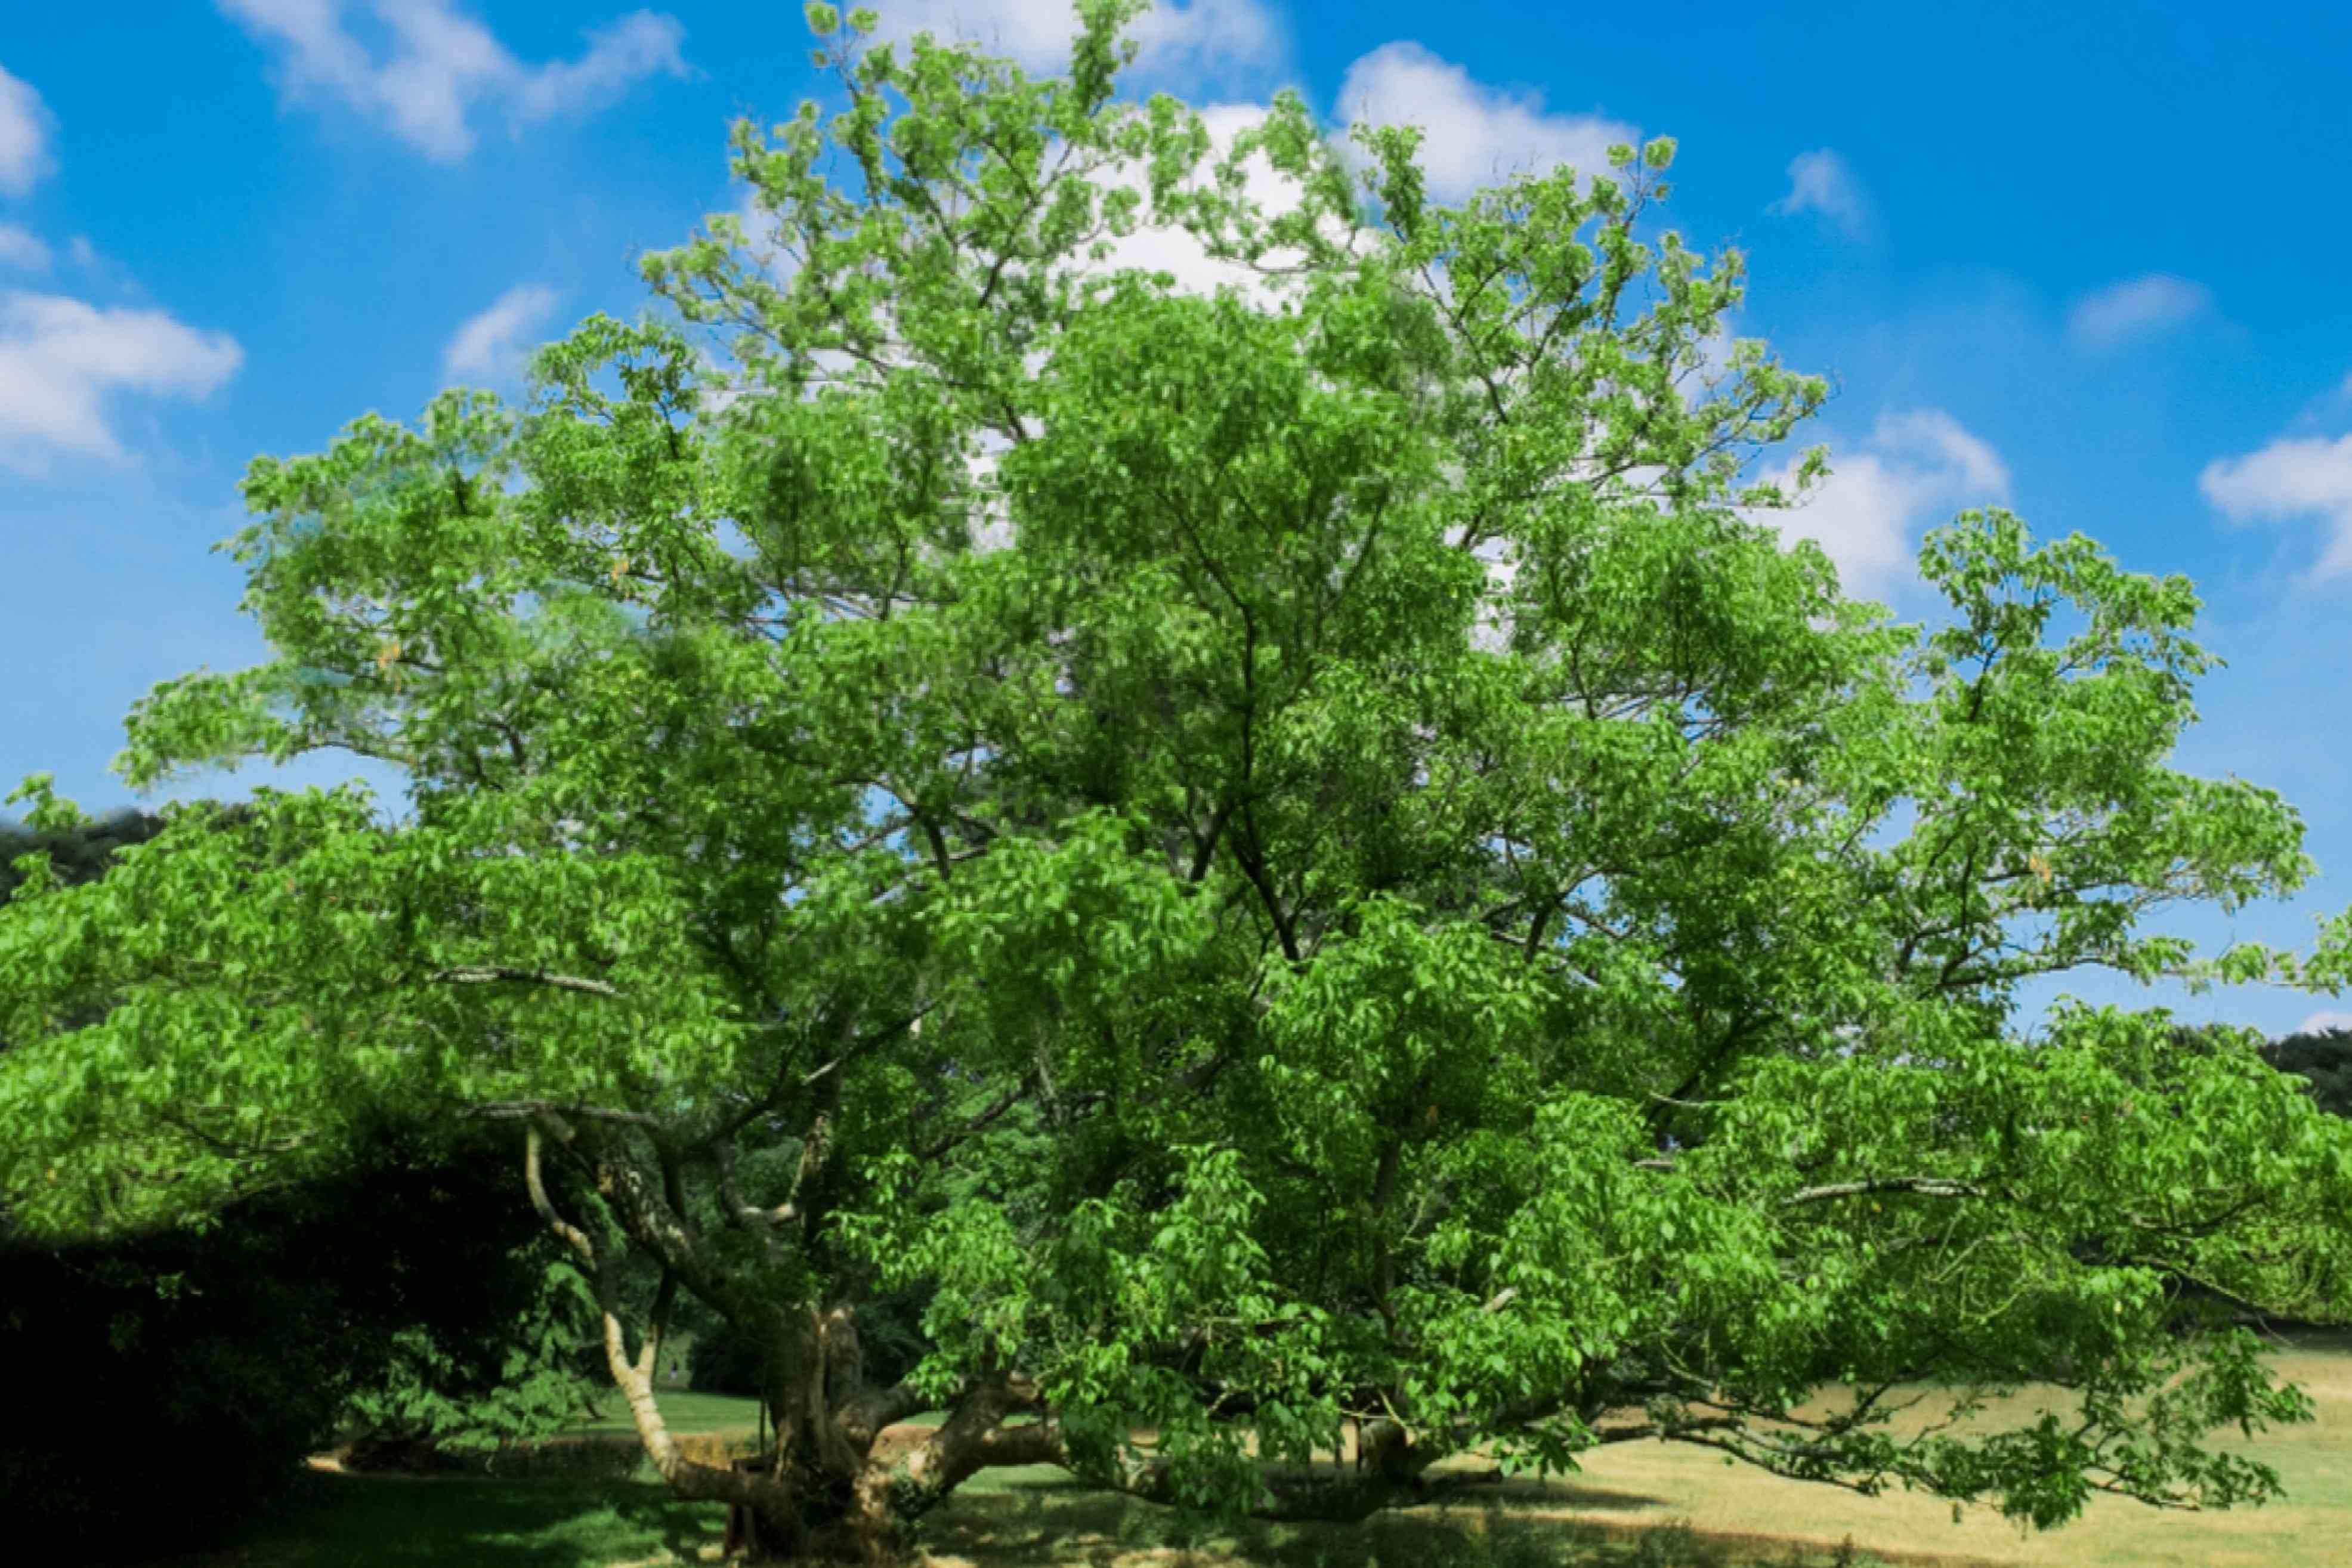 Boxelder tree with bright green leaves on extending branches against blue sky